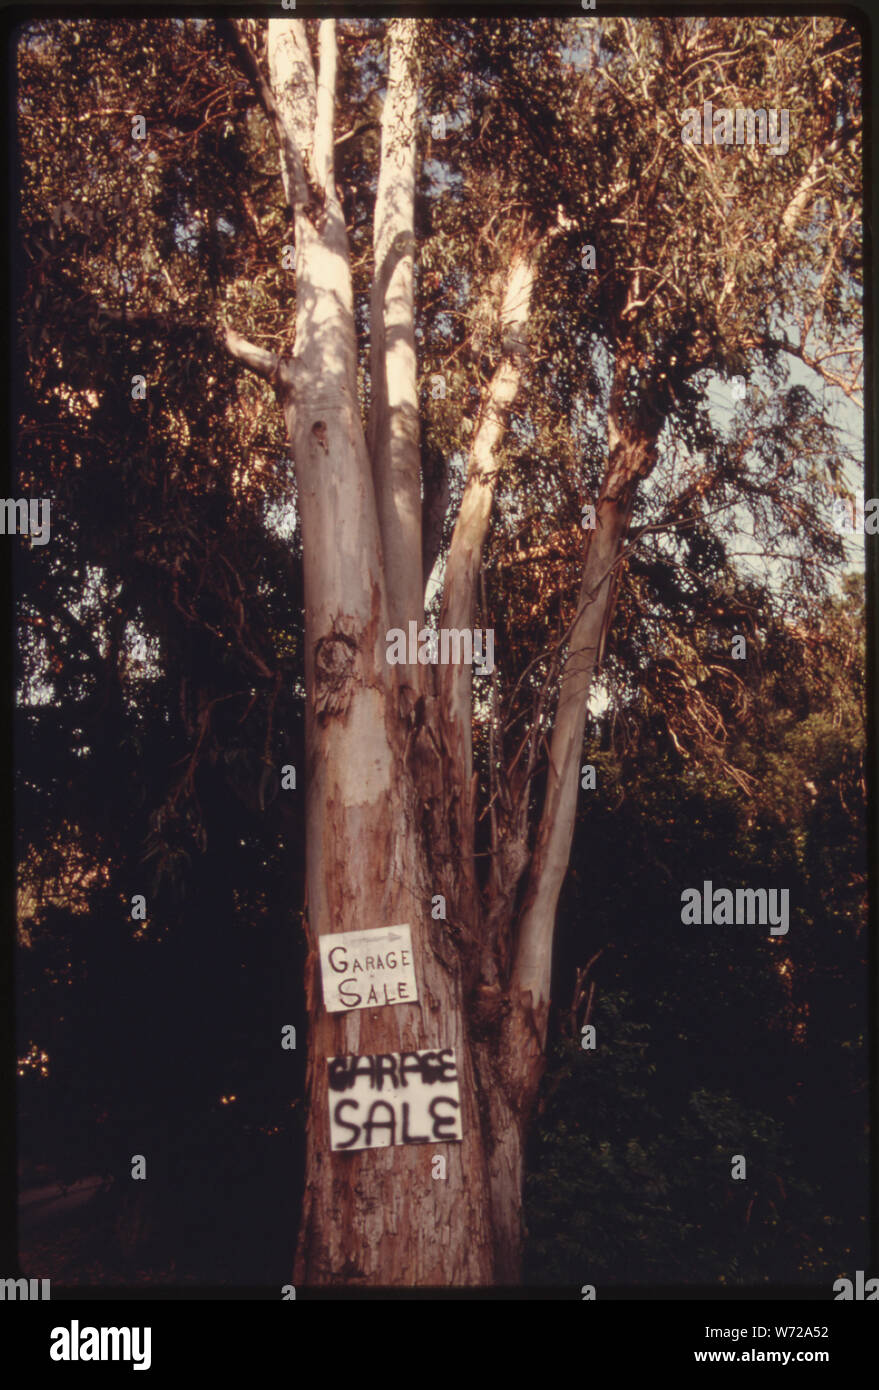 GARAGE SALE SIGN ATTACHED TO A TREE OFF MULHOLLAND DRIVE IN THE